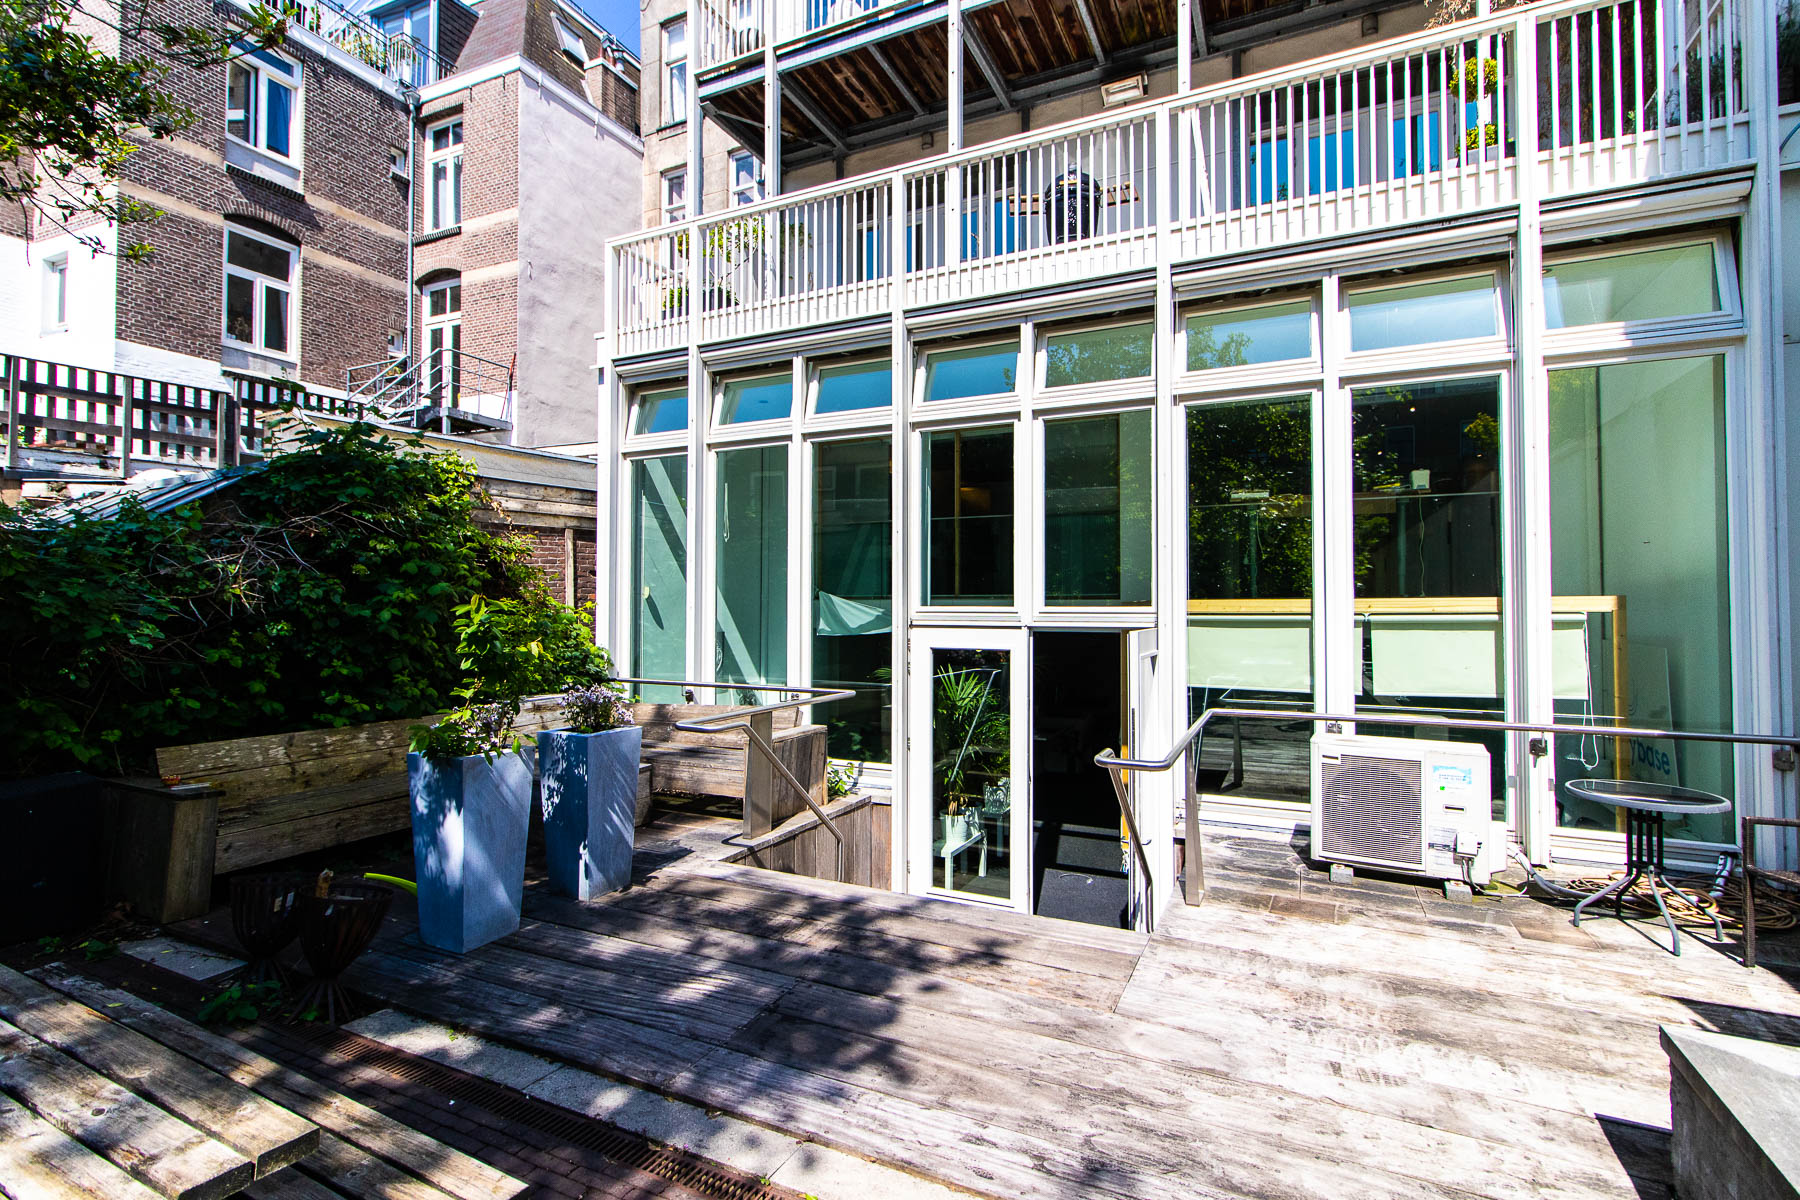 Rent office space Overtoom 47, Amsterdam (28)